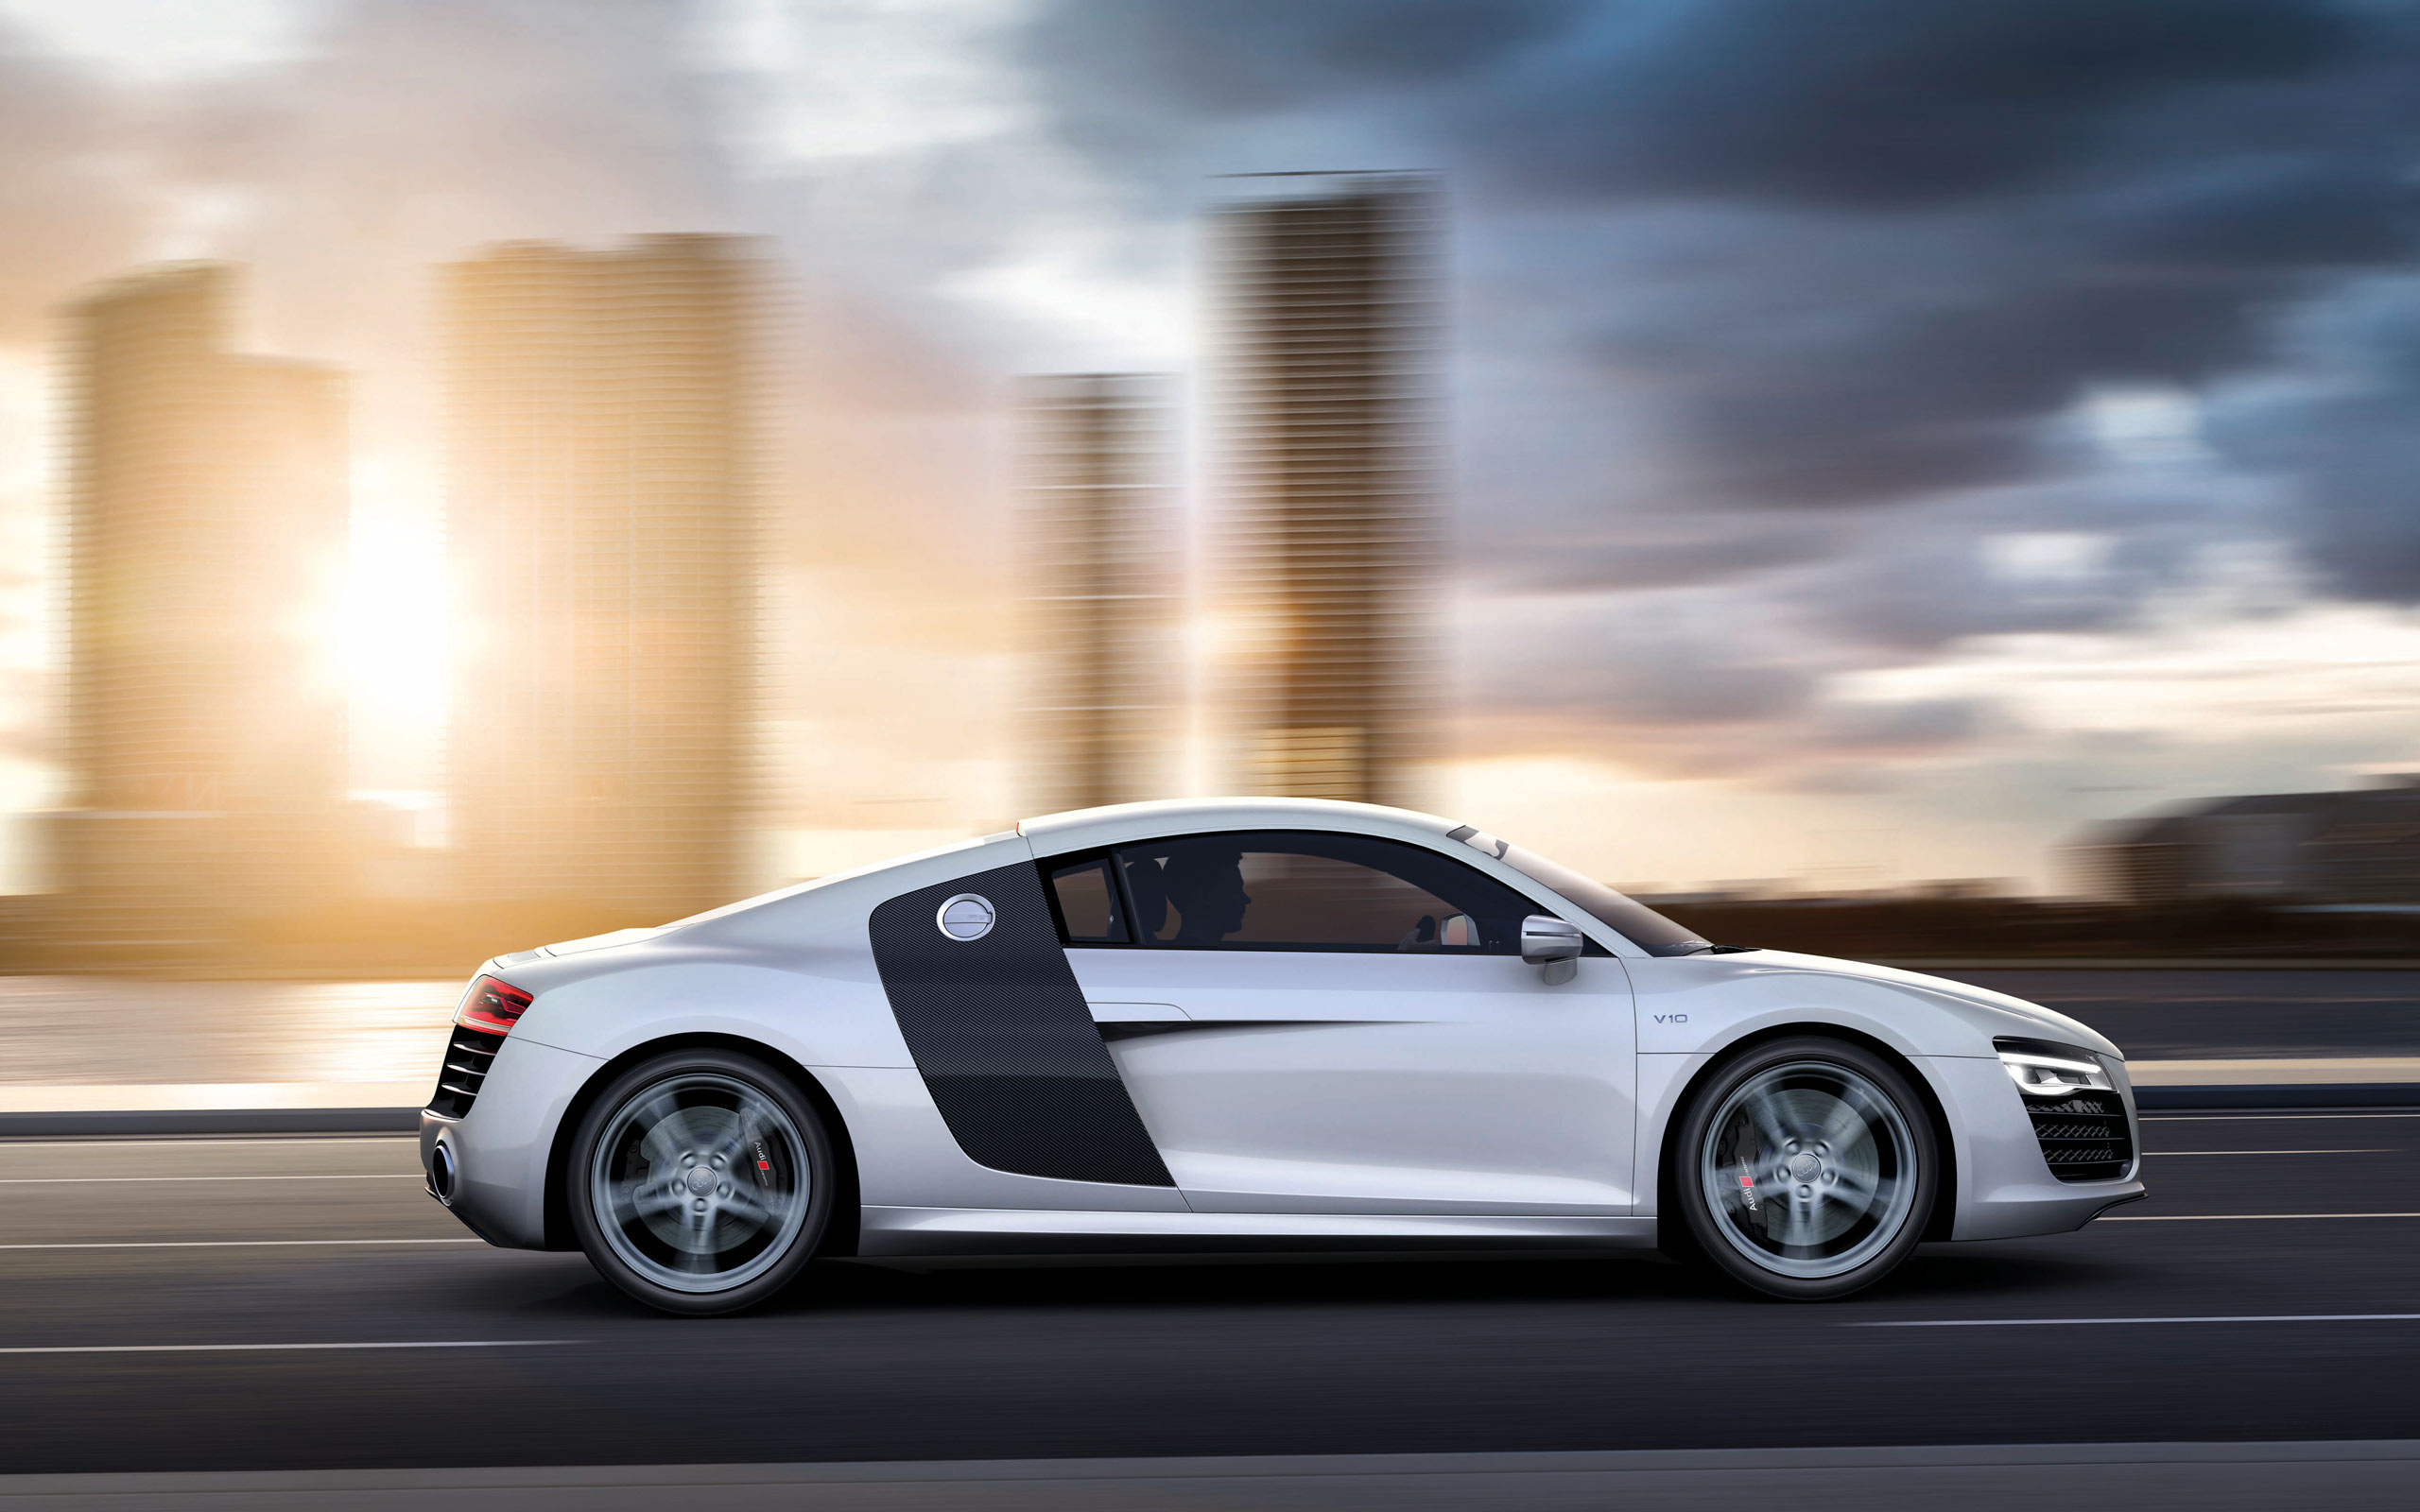 Cool Audi R8 Animated Wallpaper | Audi Automotive Design